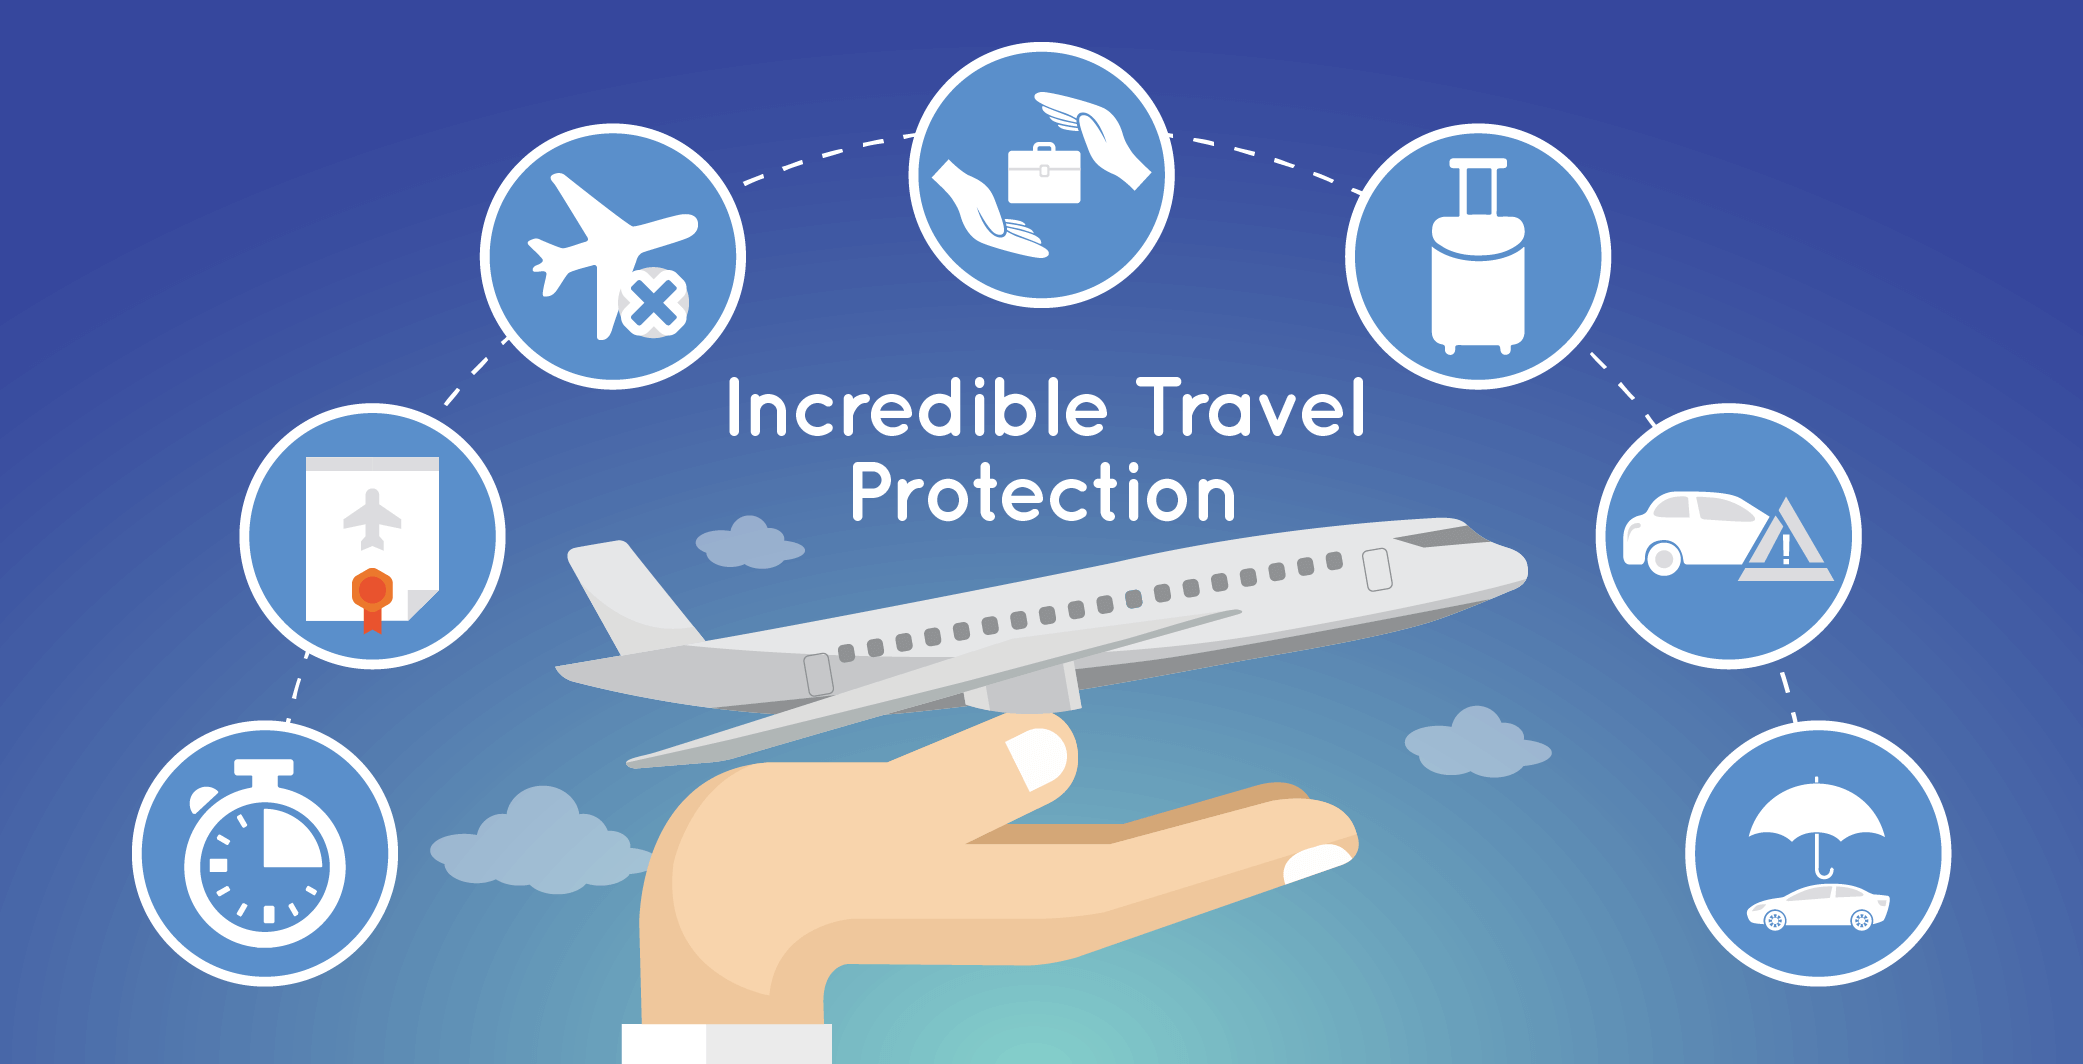 Incredible Travel Protection